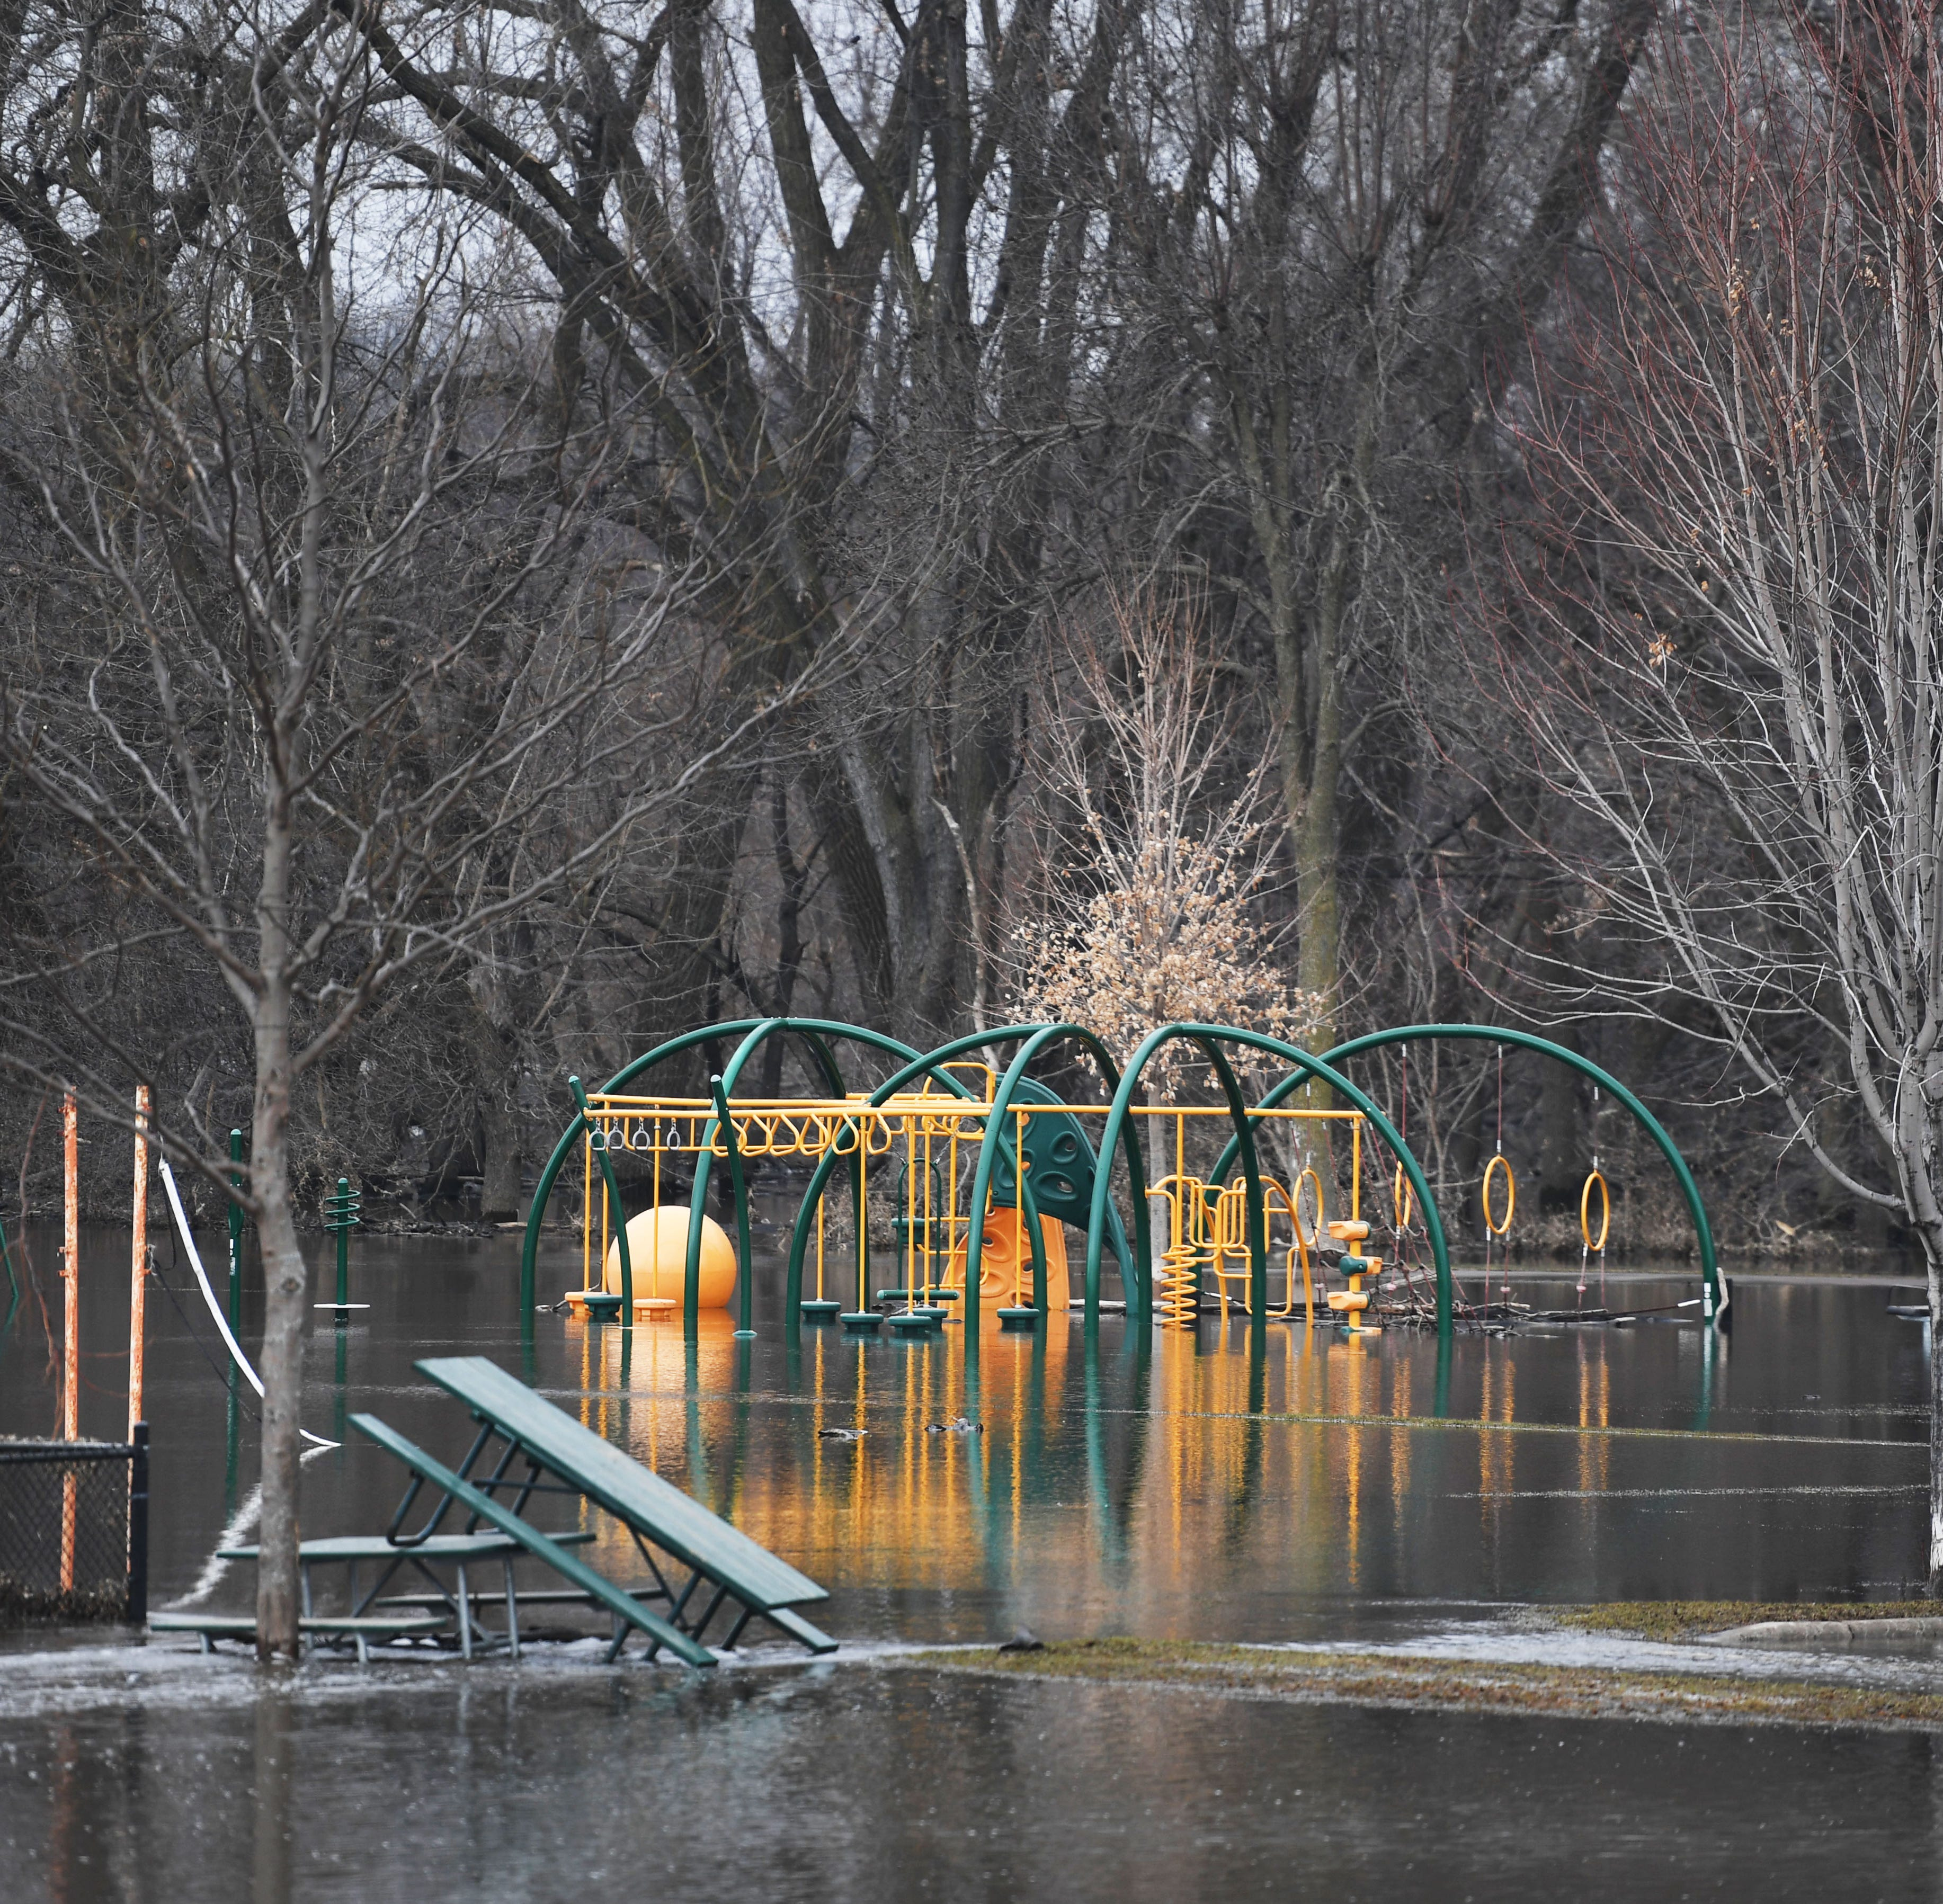 5 parks reopened after Big Sioux River flooding